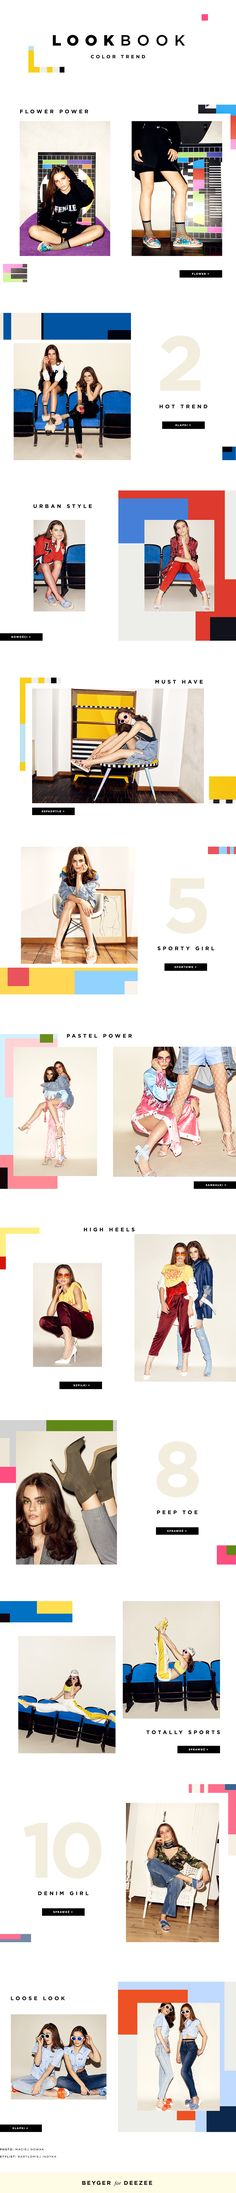 LOOKBOOK DeeZee on Behance